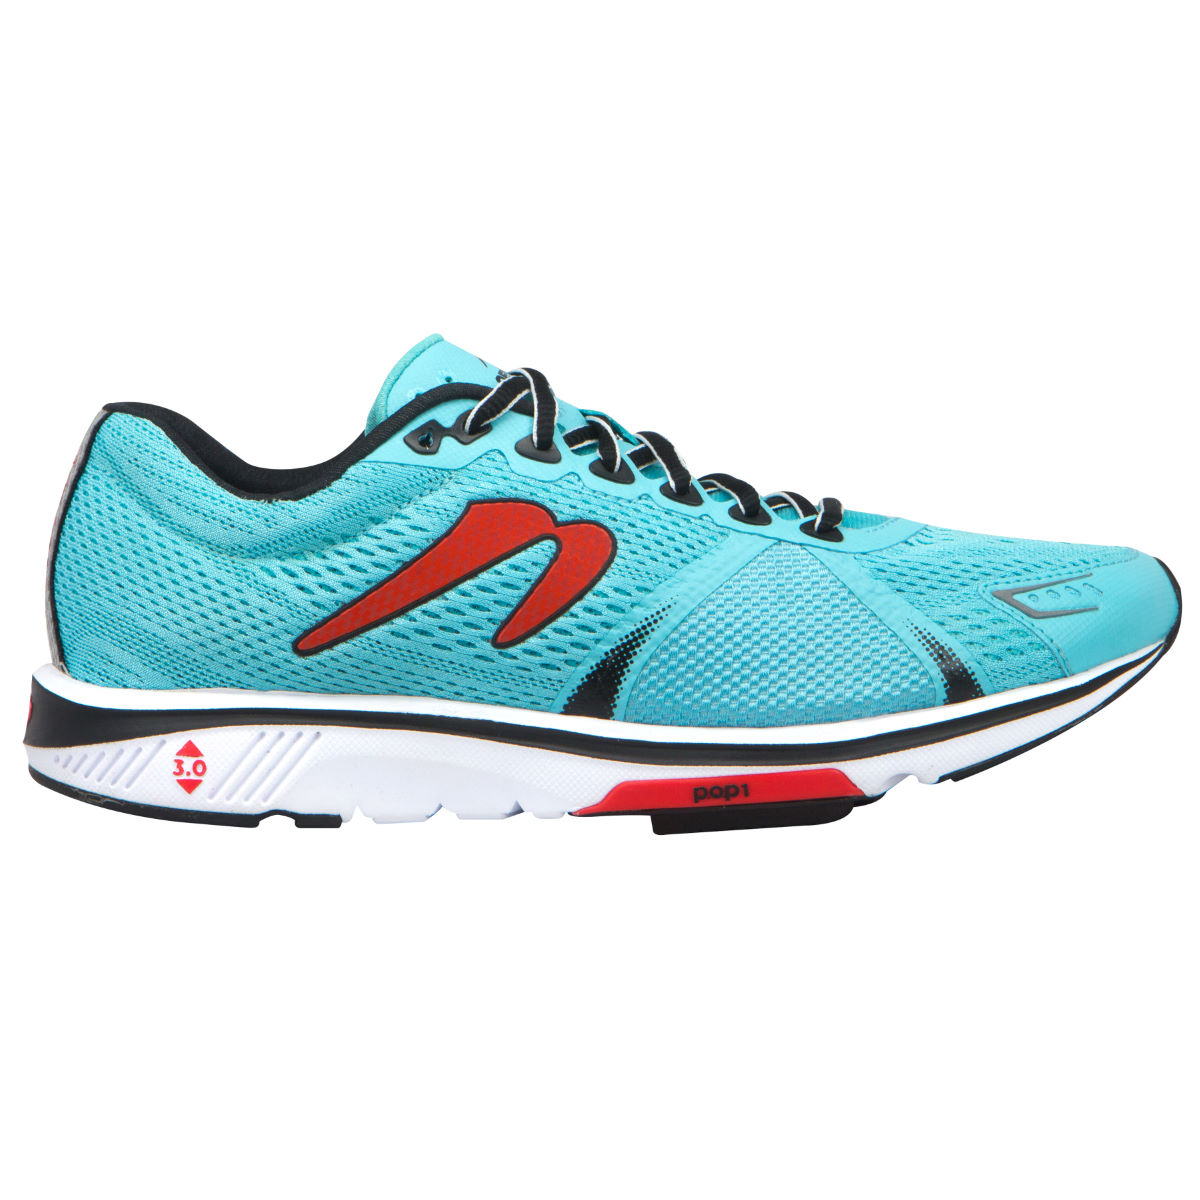 Chaussures Newton Running Gravity V (PE16) - 7 UK Blue/Red Chaussures de running amorties